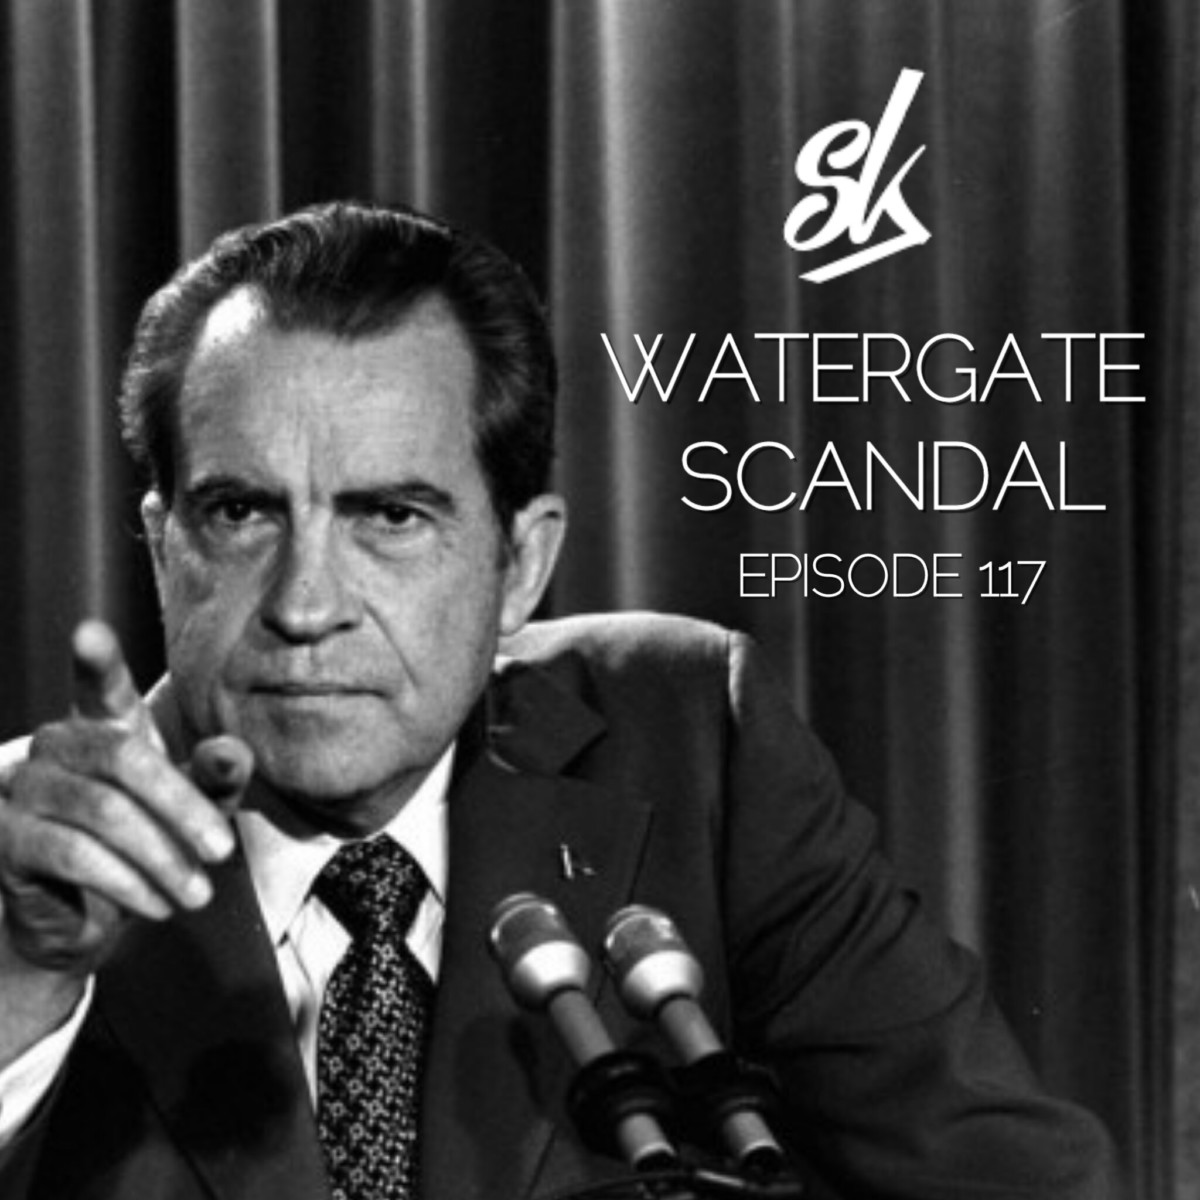 Episode 117: Watergate: Unseating A President